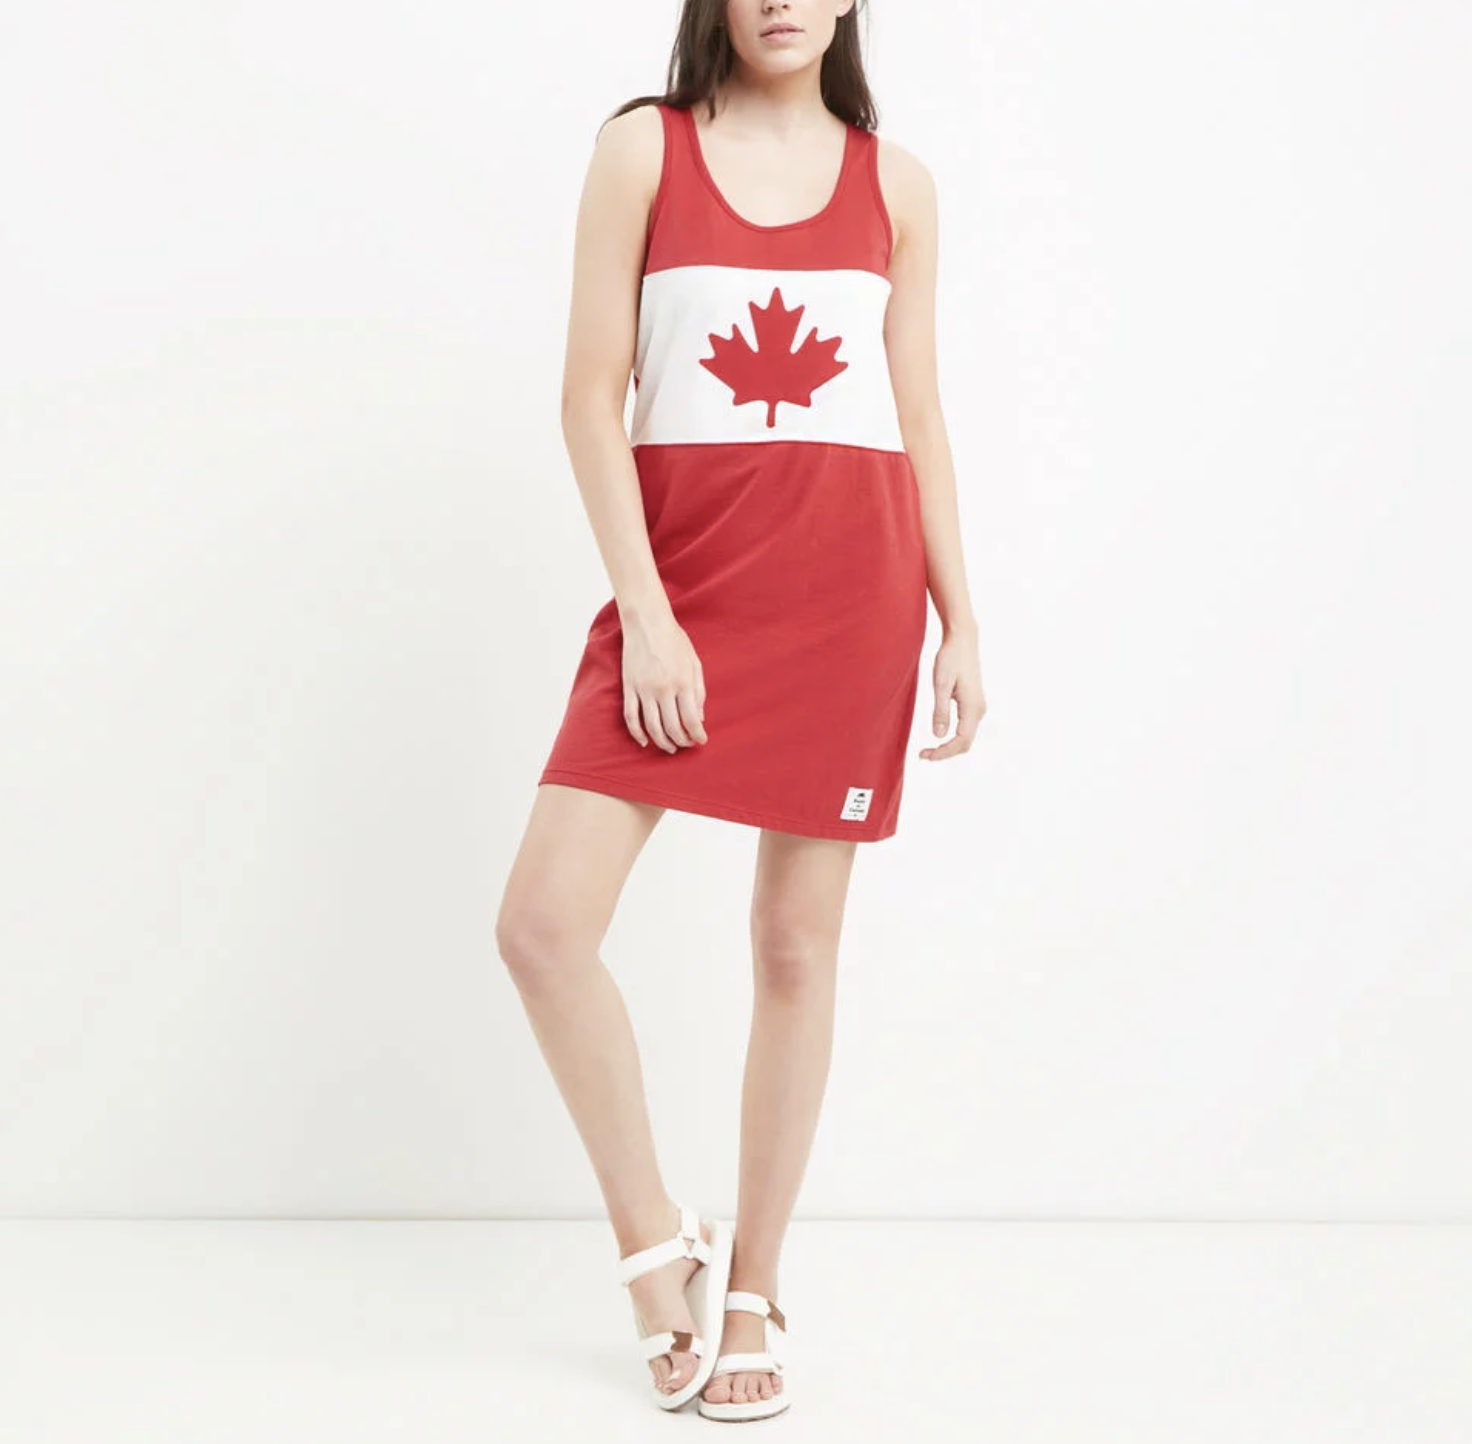 Canada Day Outfits That Show Off Your True Patriot